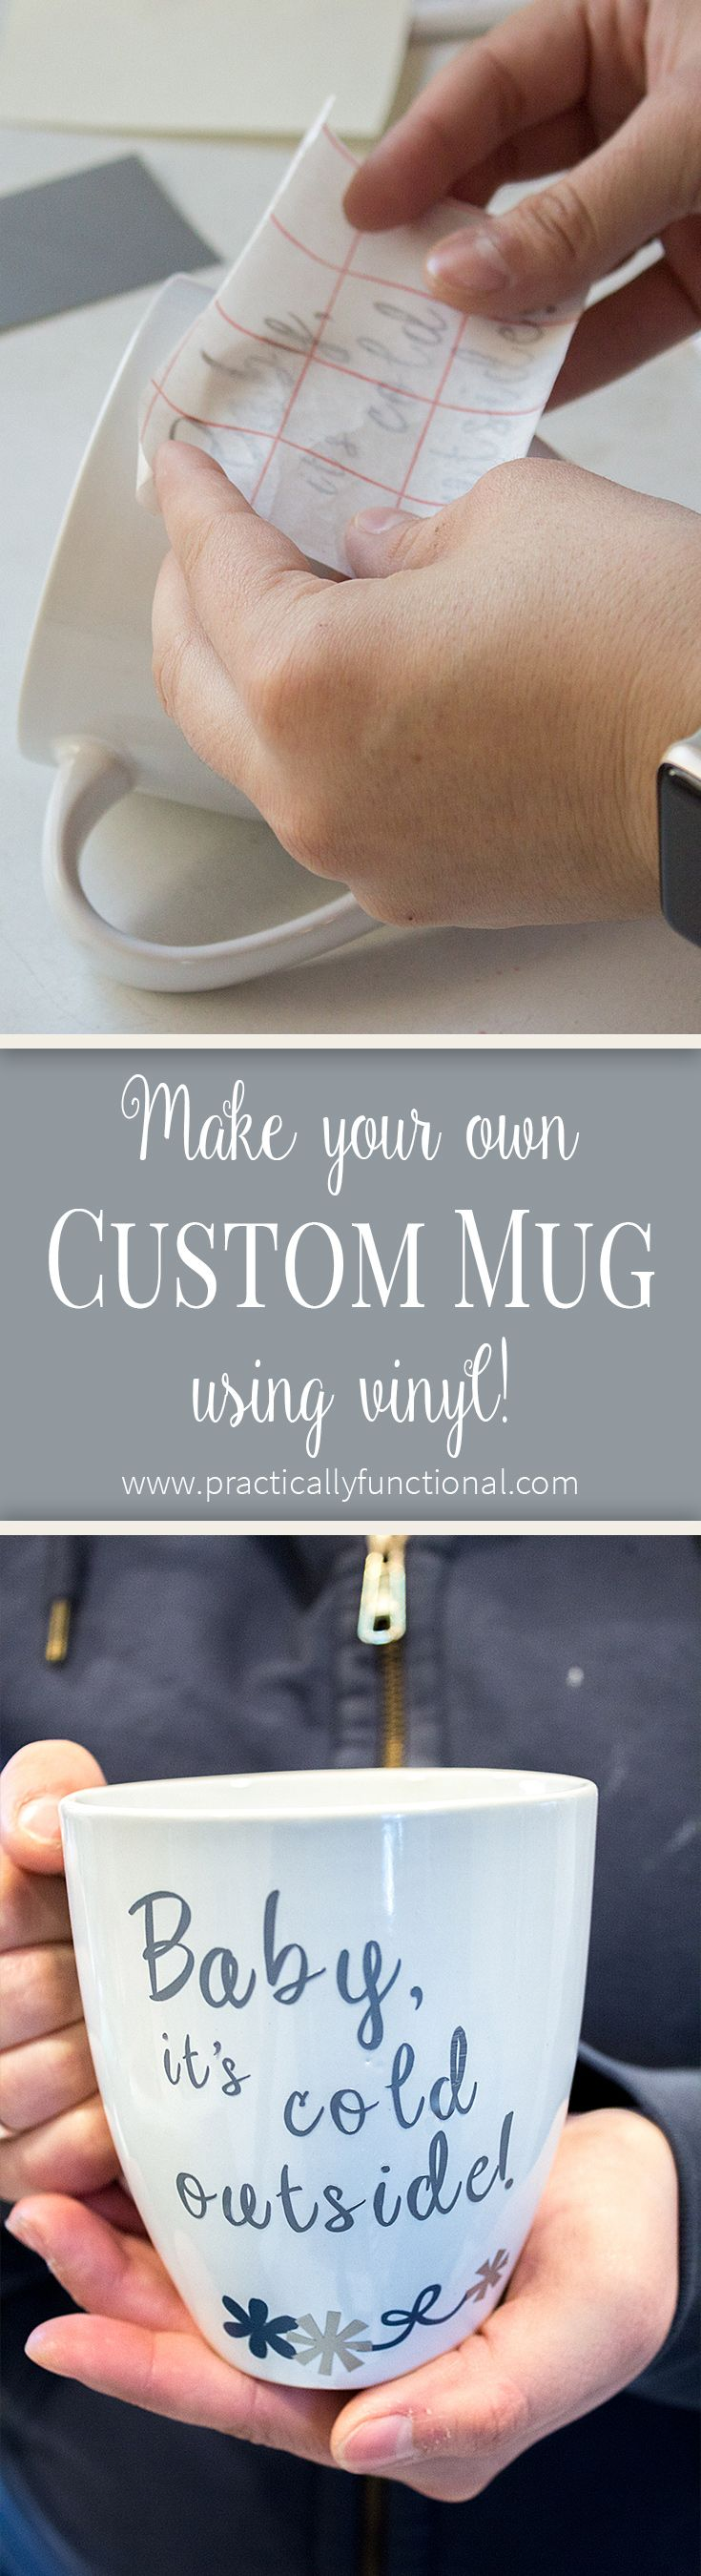 Make Your Own Christmas Gift Ideas Part - 26: Make Your Own Mug With Vinyl